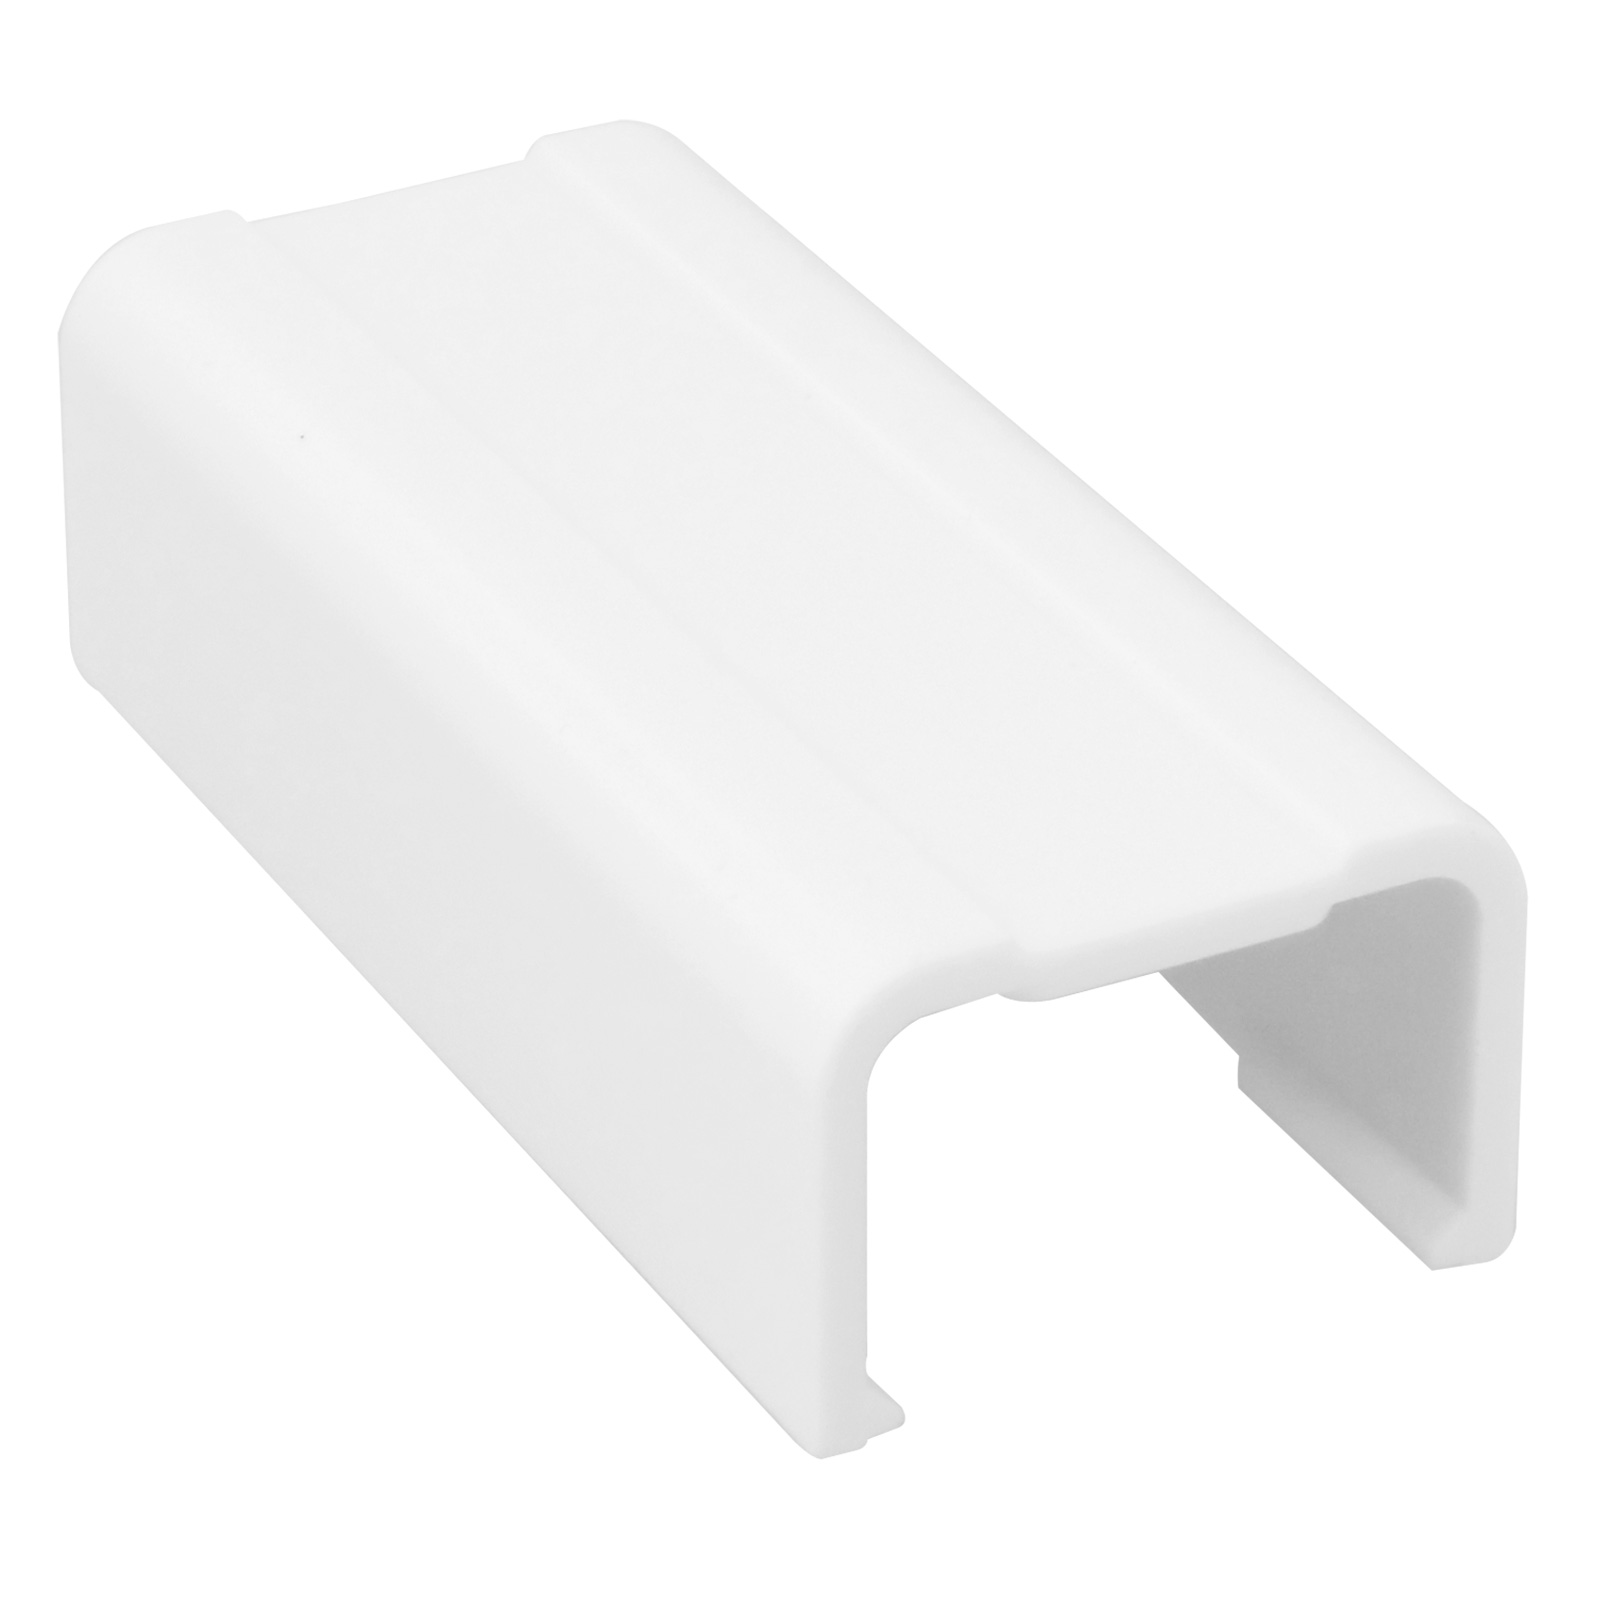 3/4 inch Joint Cover for Raceway - White, 5pcs/pack